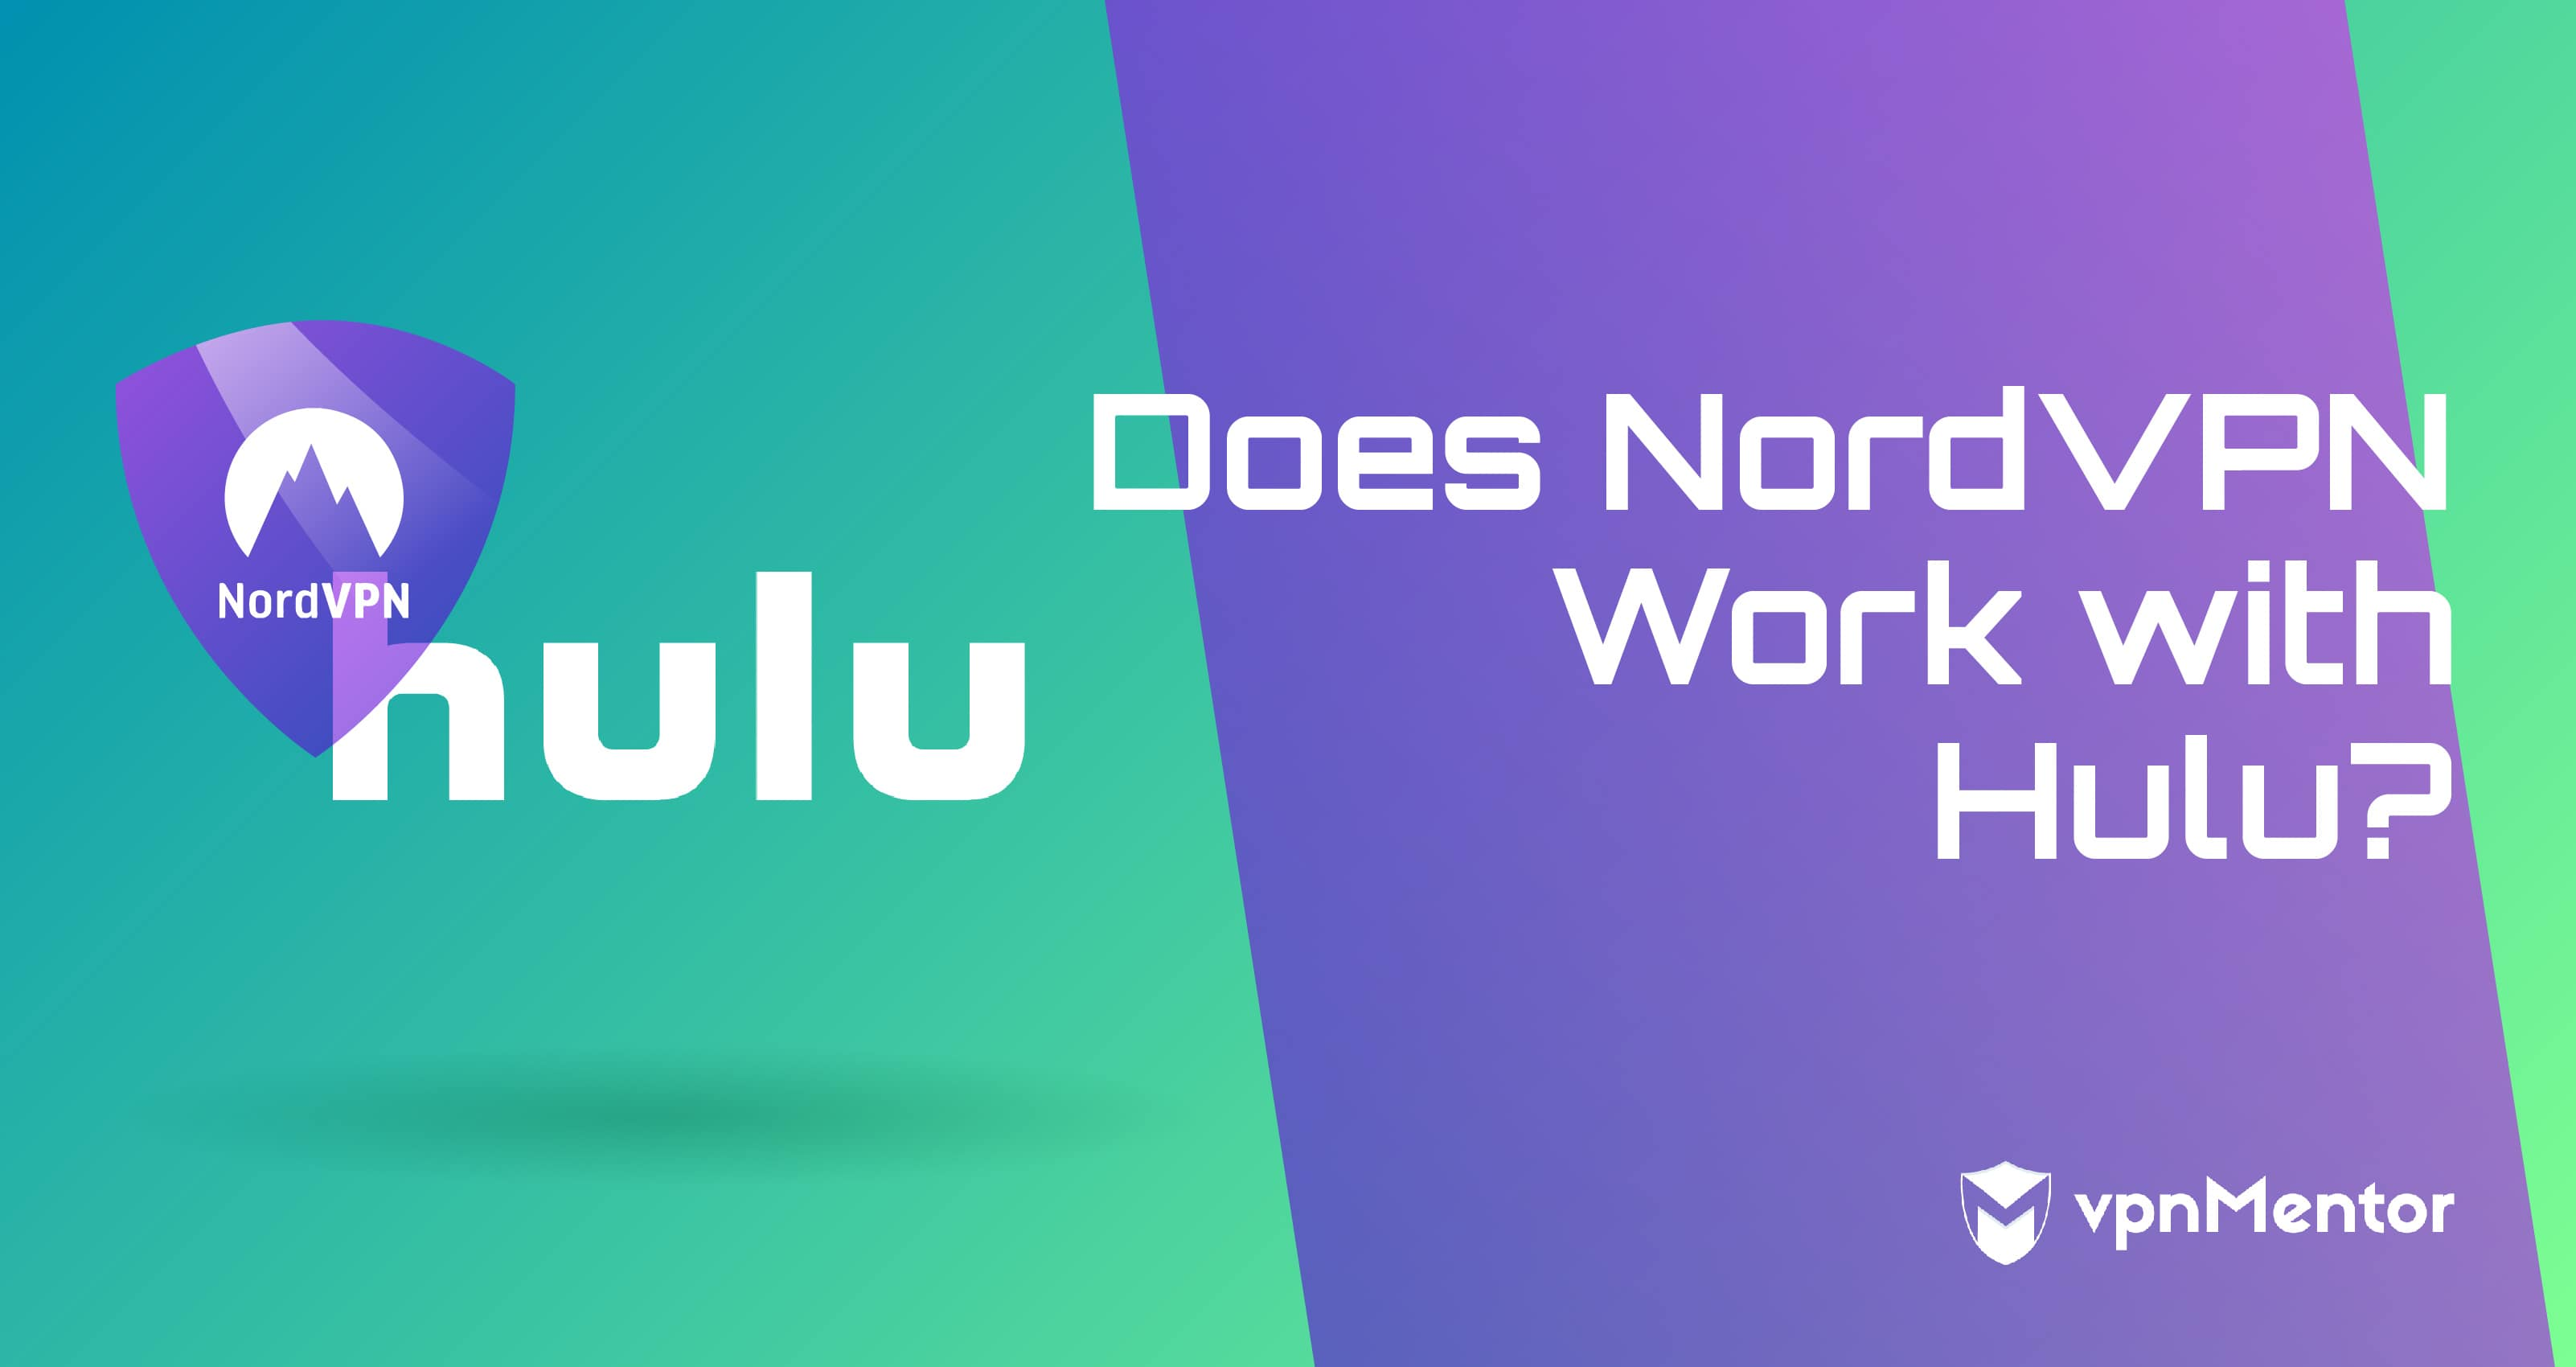 Does NordVPN Work with Hulu?